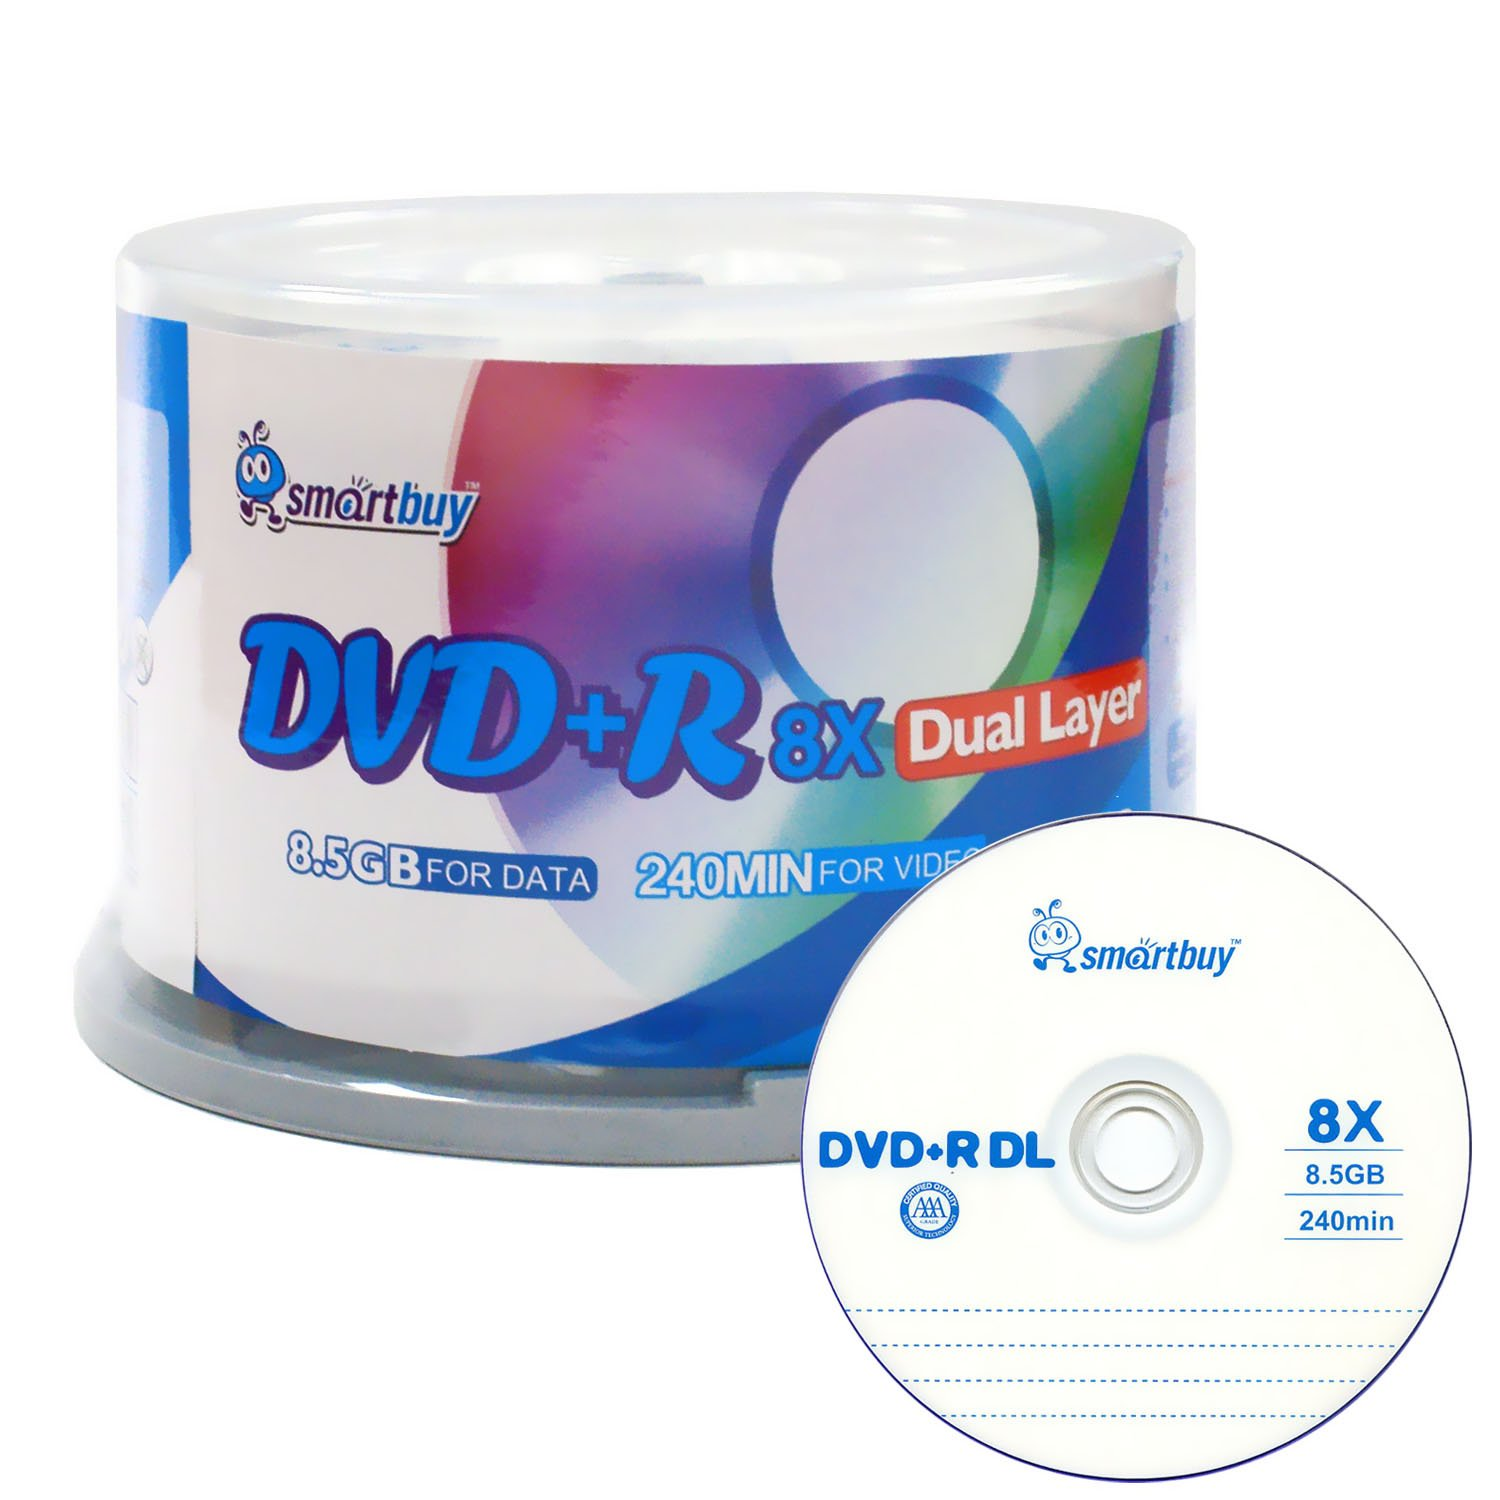 Smartbuy Logo 50-disc 8.5gb/240min 8x Dvd+r Dl Dual Layer Double Layer Blank Data Record Media Disc Spindle